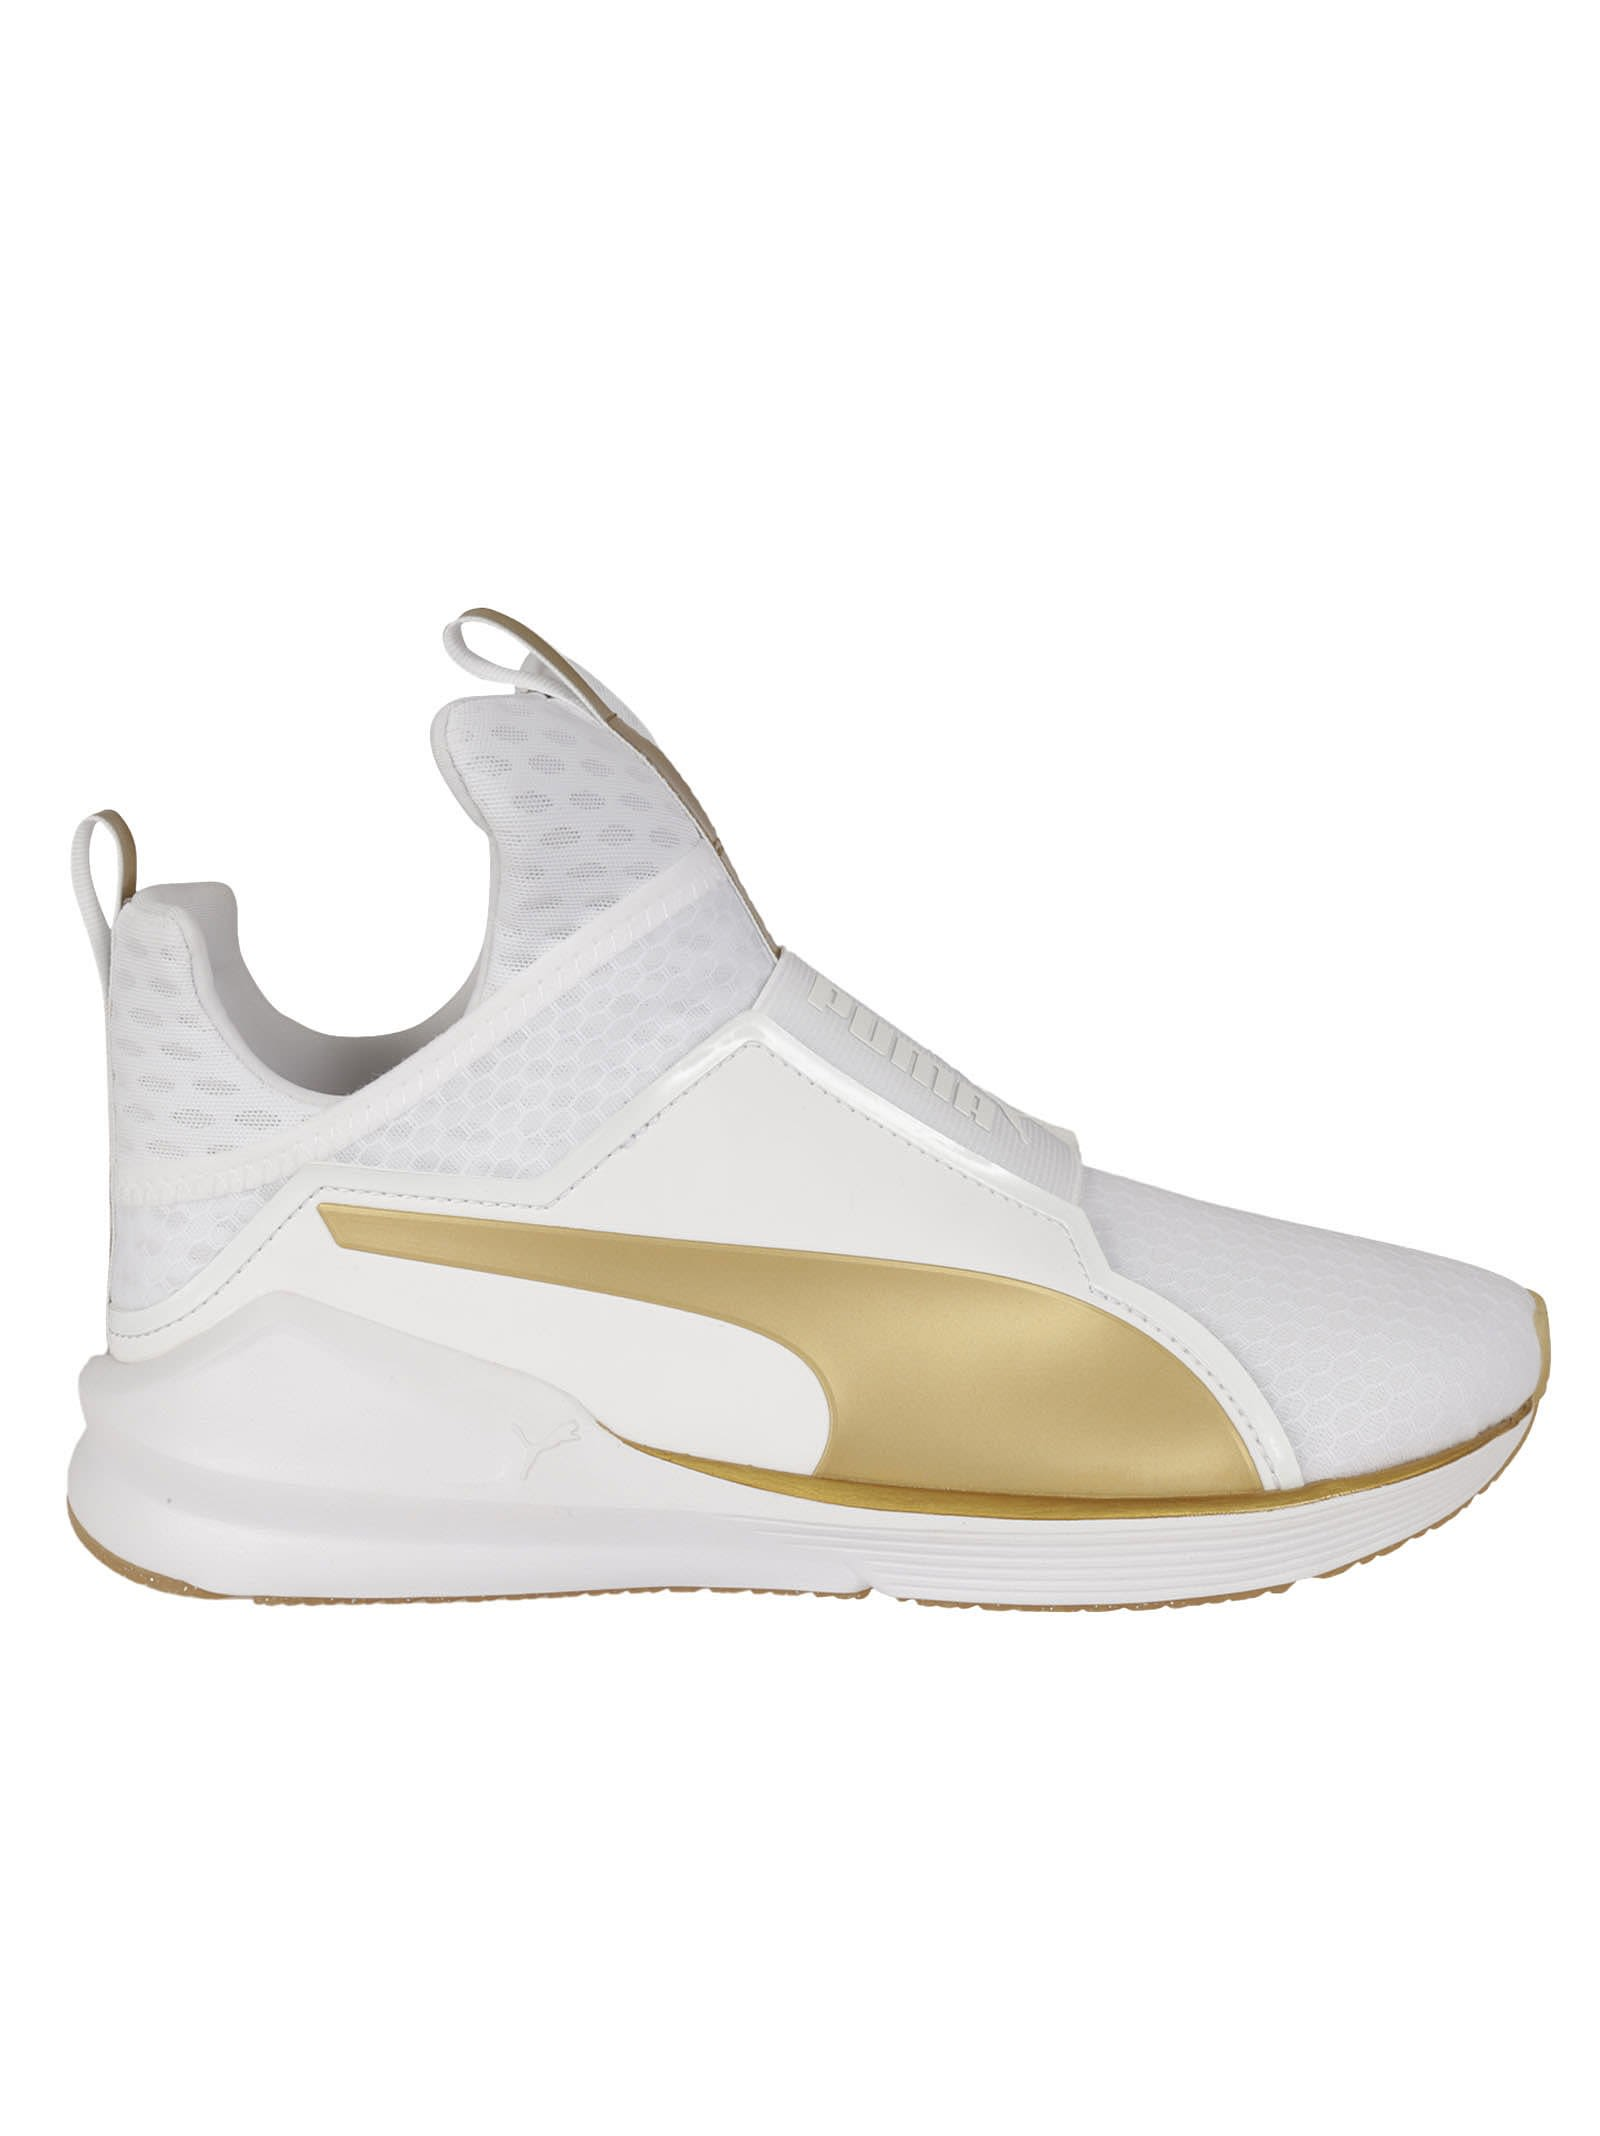 White And Gold Fierce Sneakers